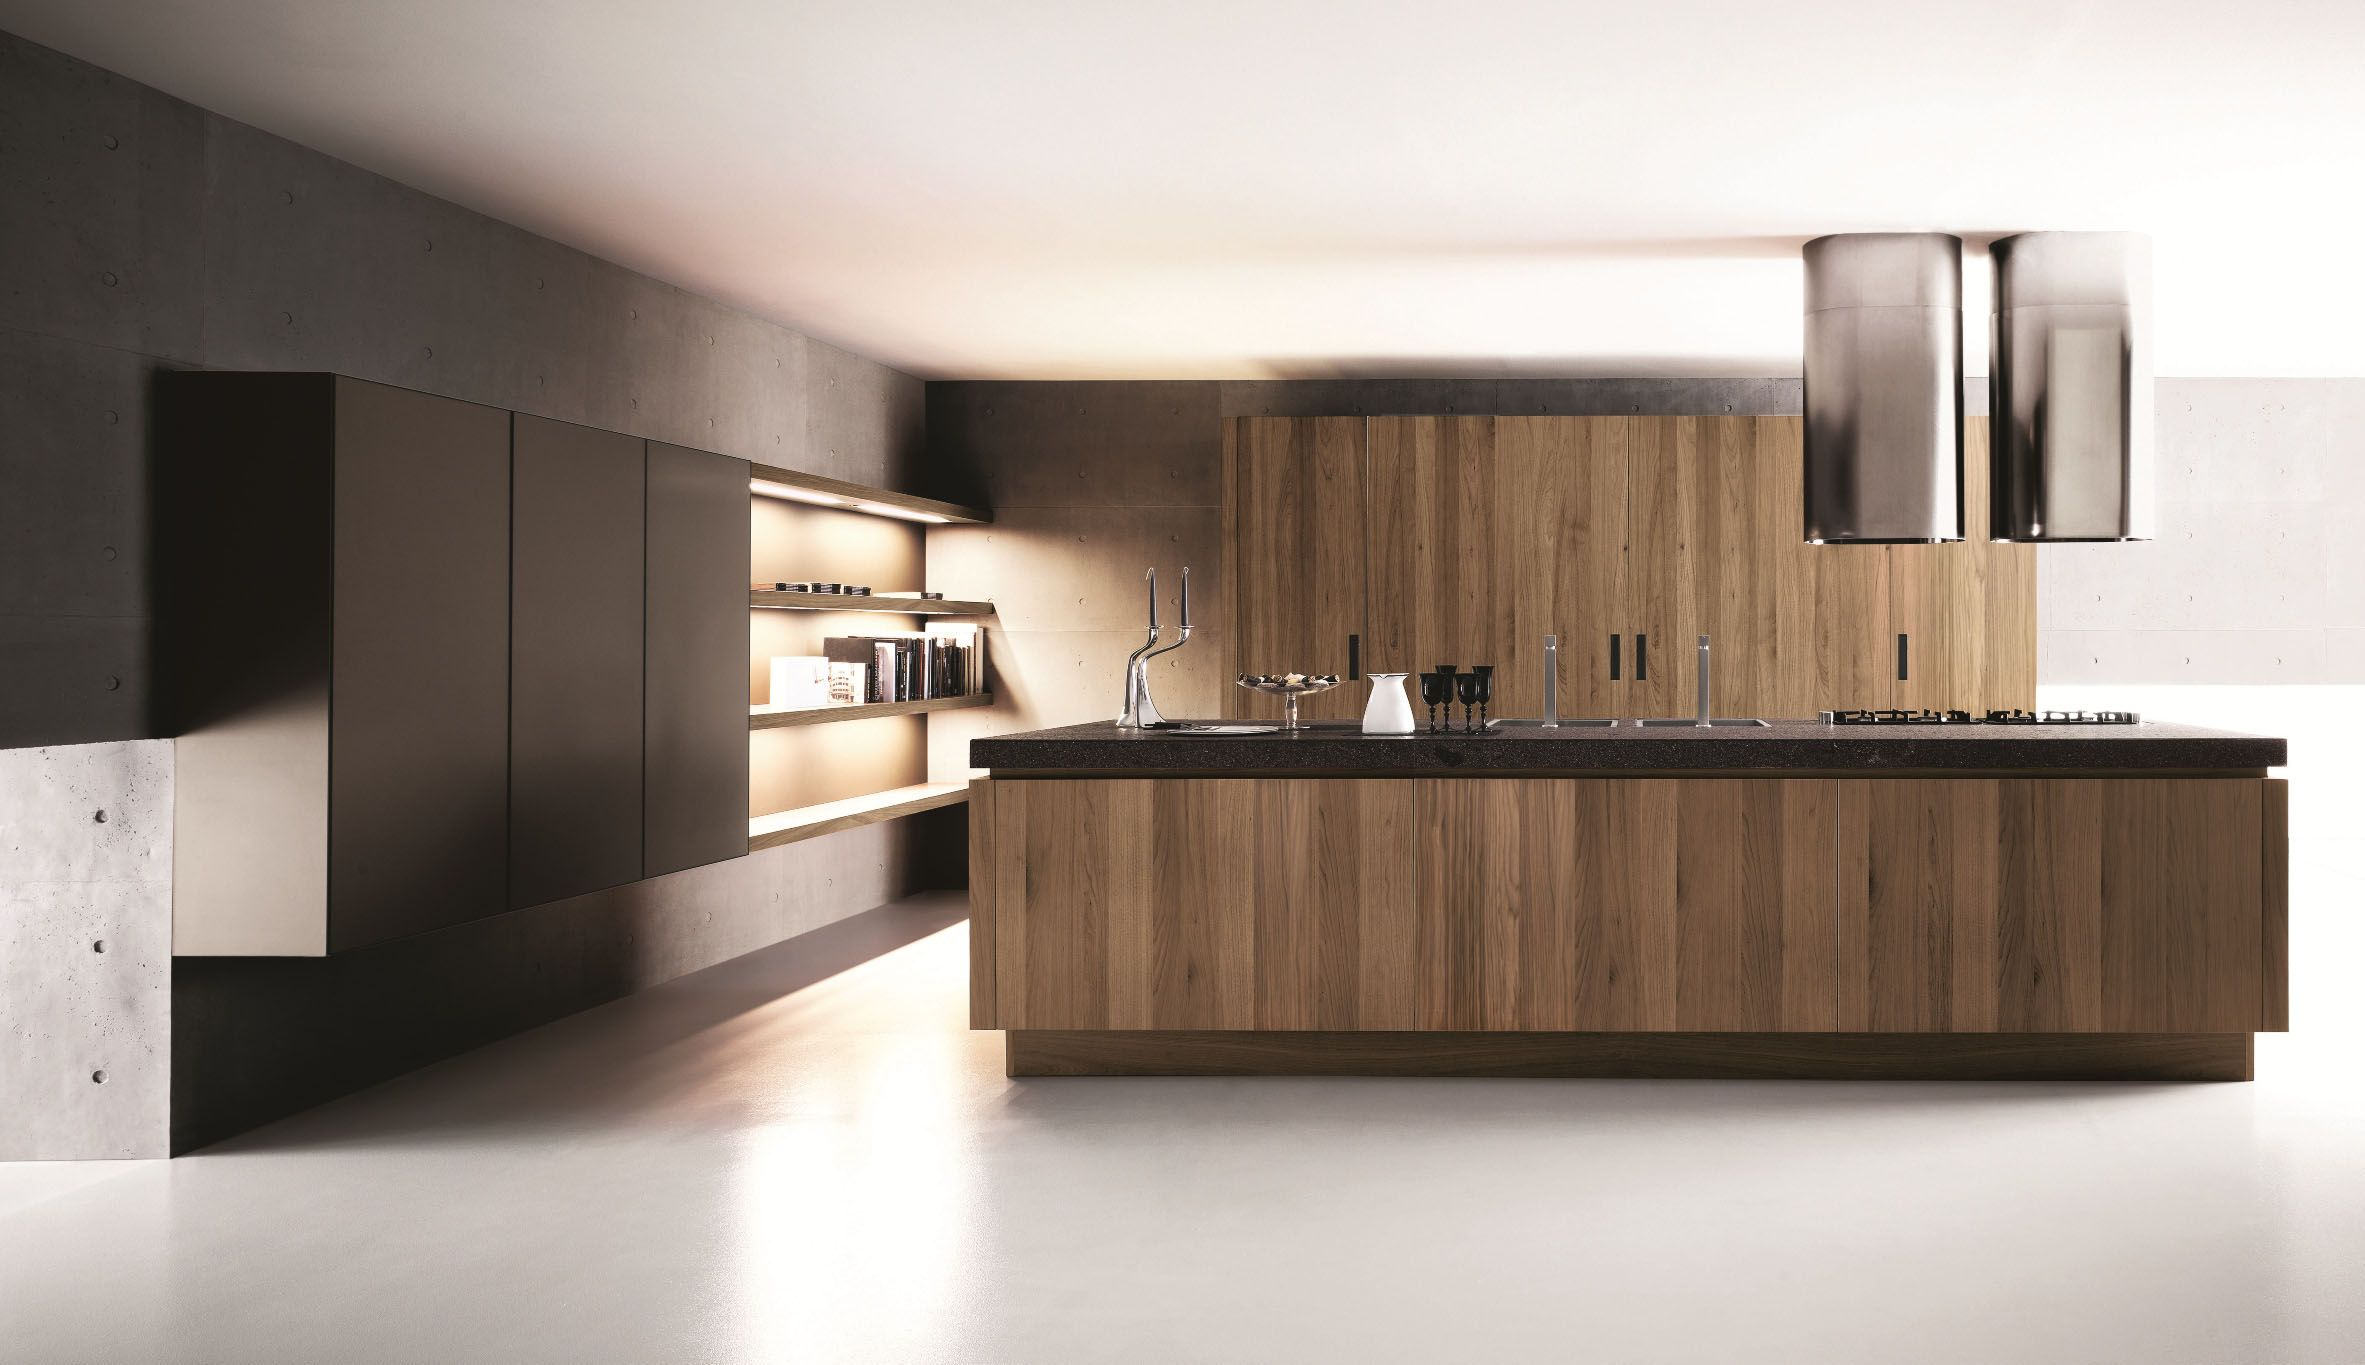 Creative Black Walnut Kitchen Interior  Kitchens  Pinterest Brilliant Design Of Kitchens Decorating Design